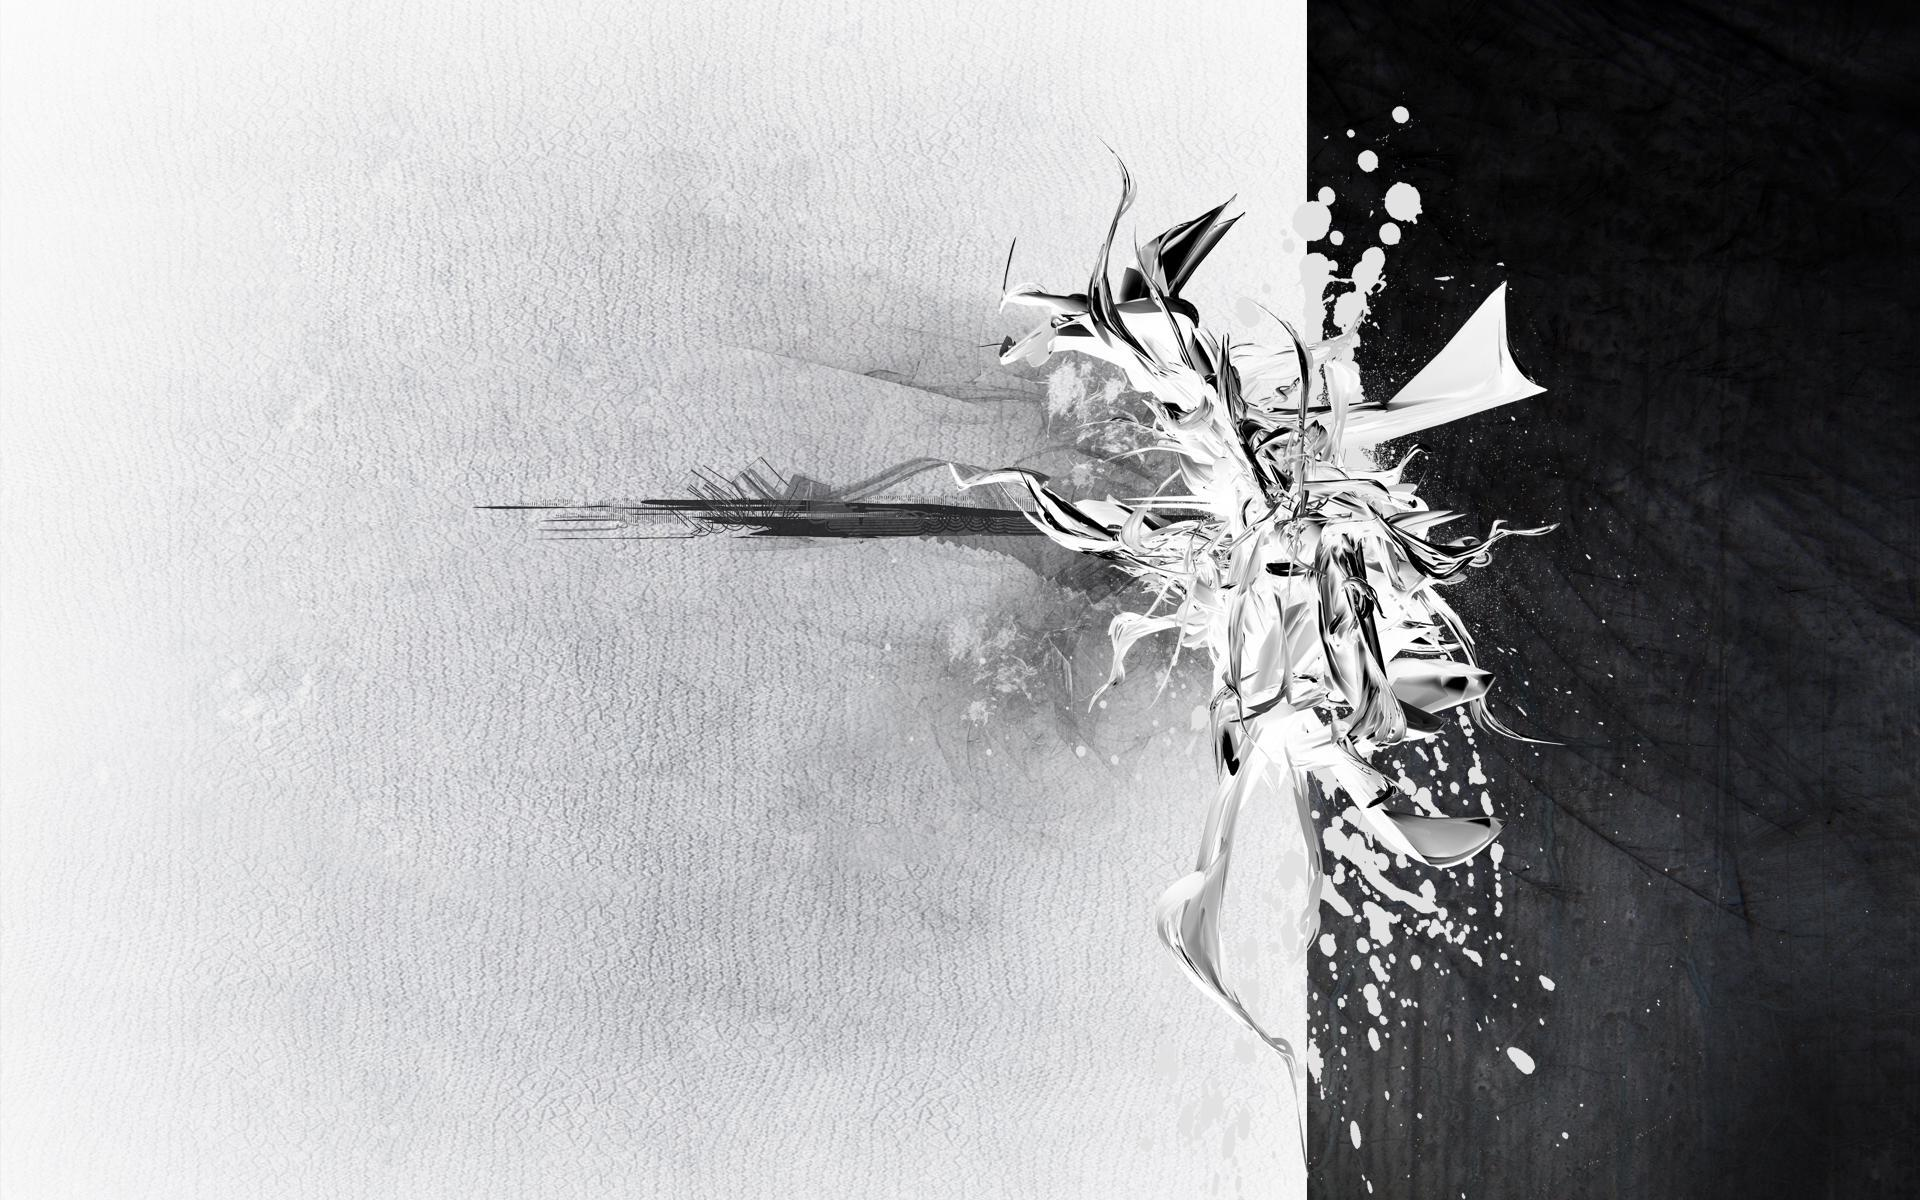 Black and White Abstract Wallpapers Black and White Abstract 1920x1200